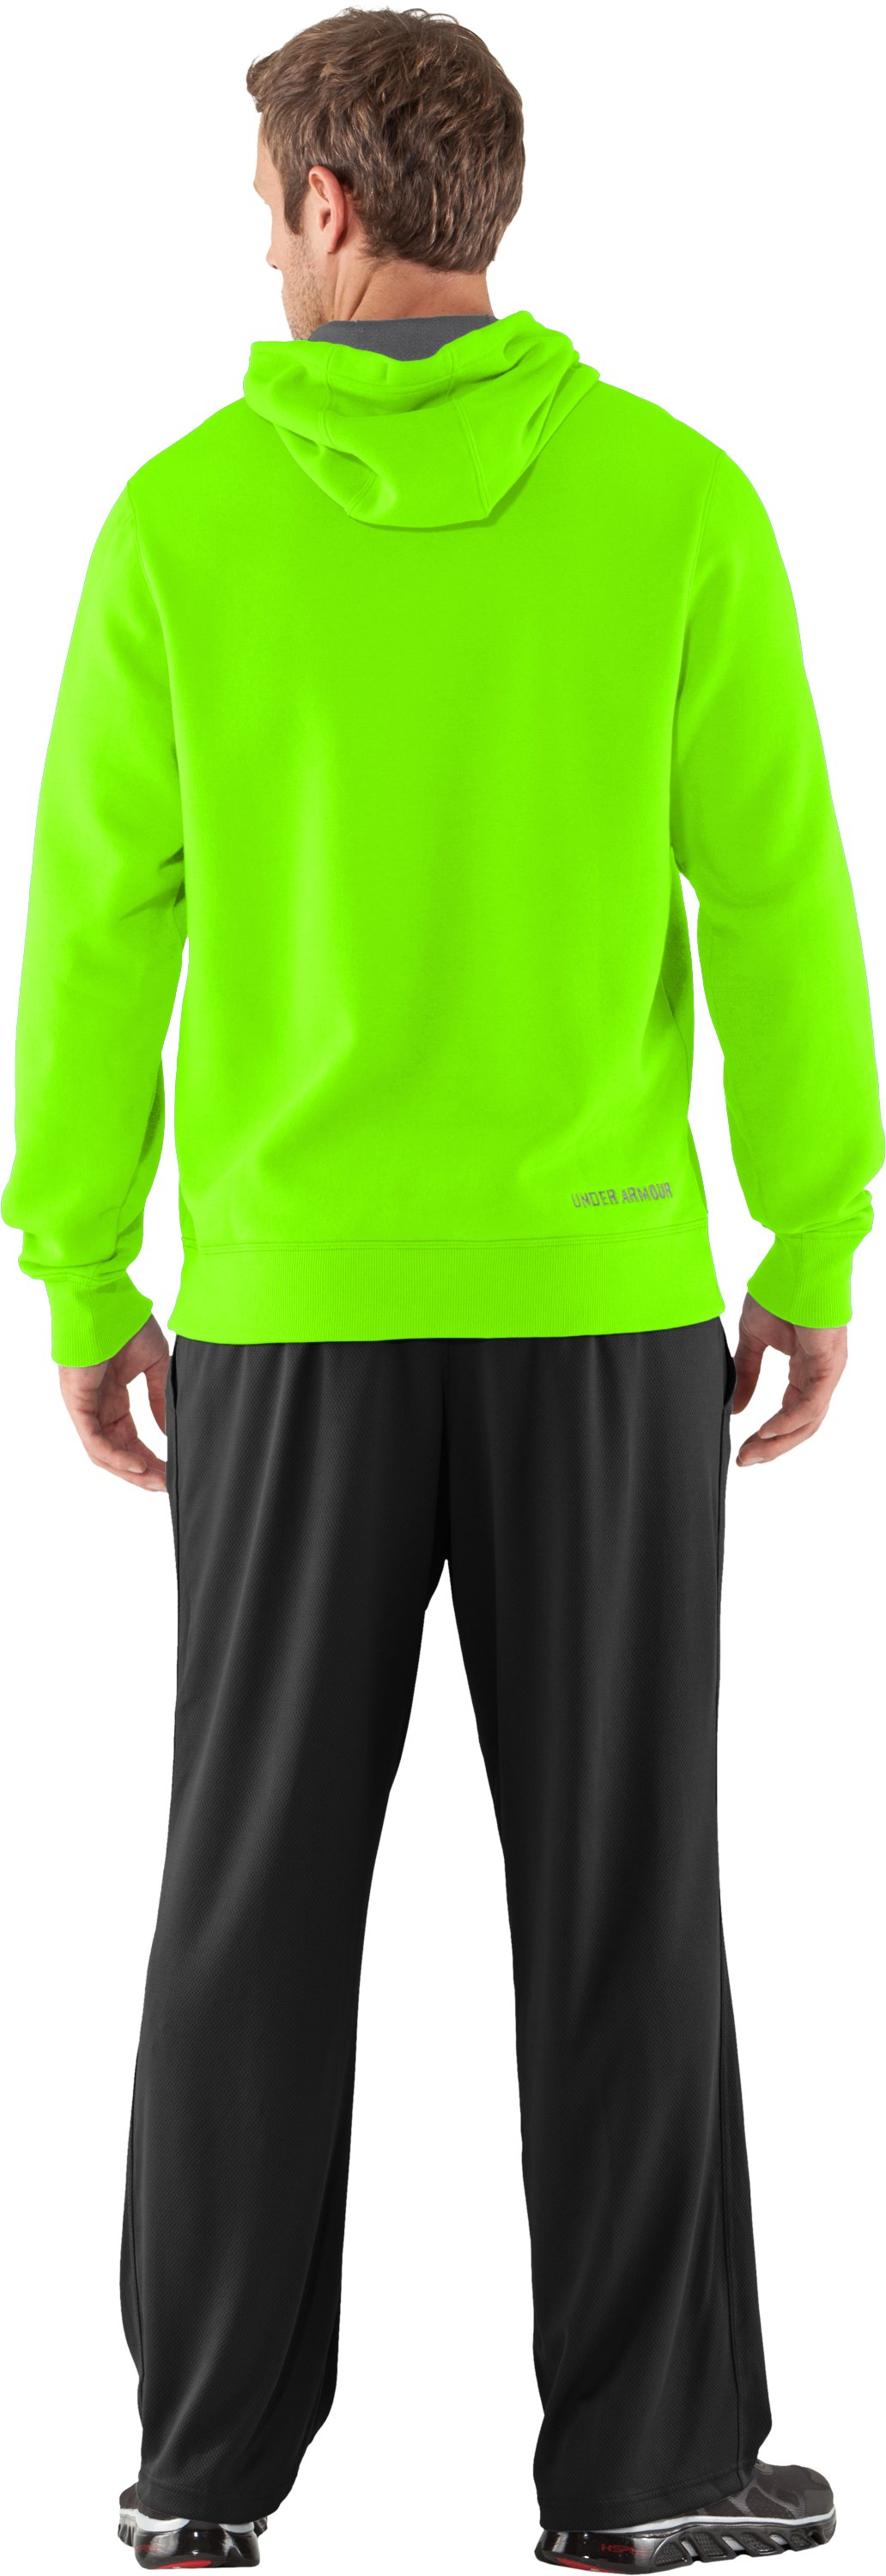 Men's Charged Cotton® Storm Transit Hoodie, HYPER GREEN, Back